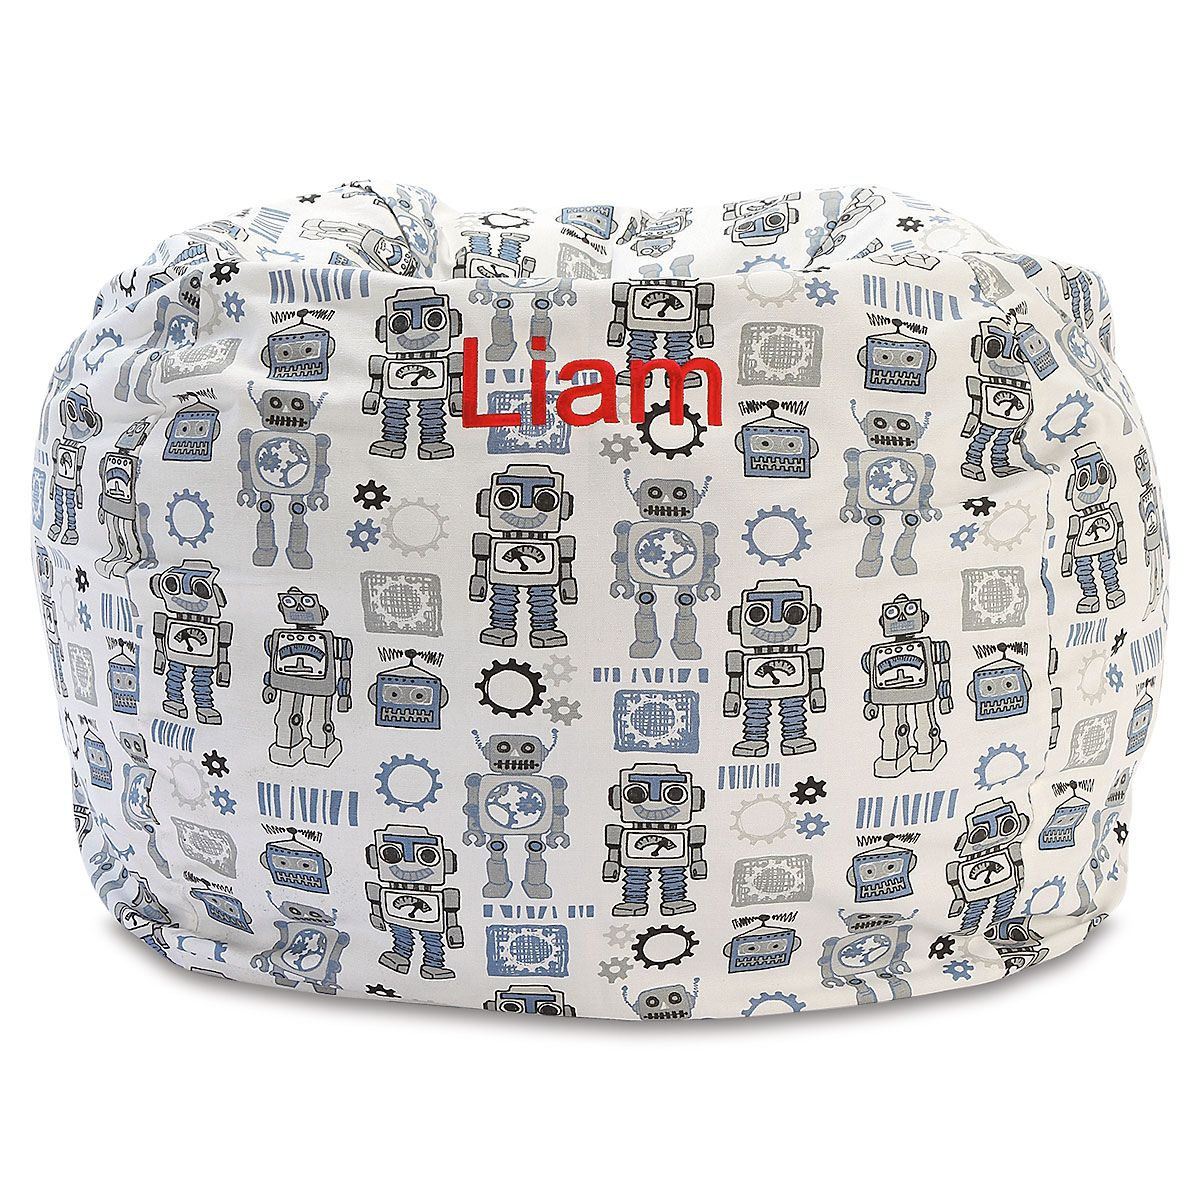 Sci-Fi Personalized Bean Bag Chair